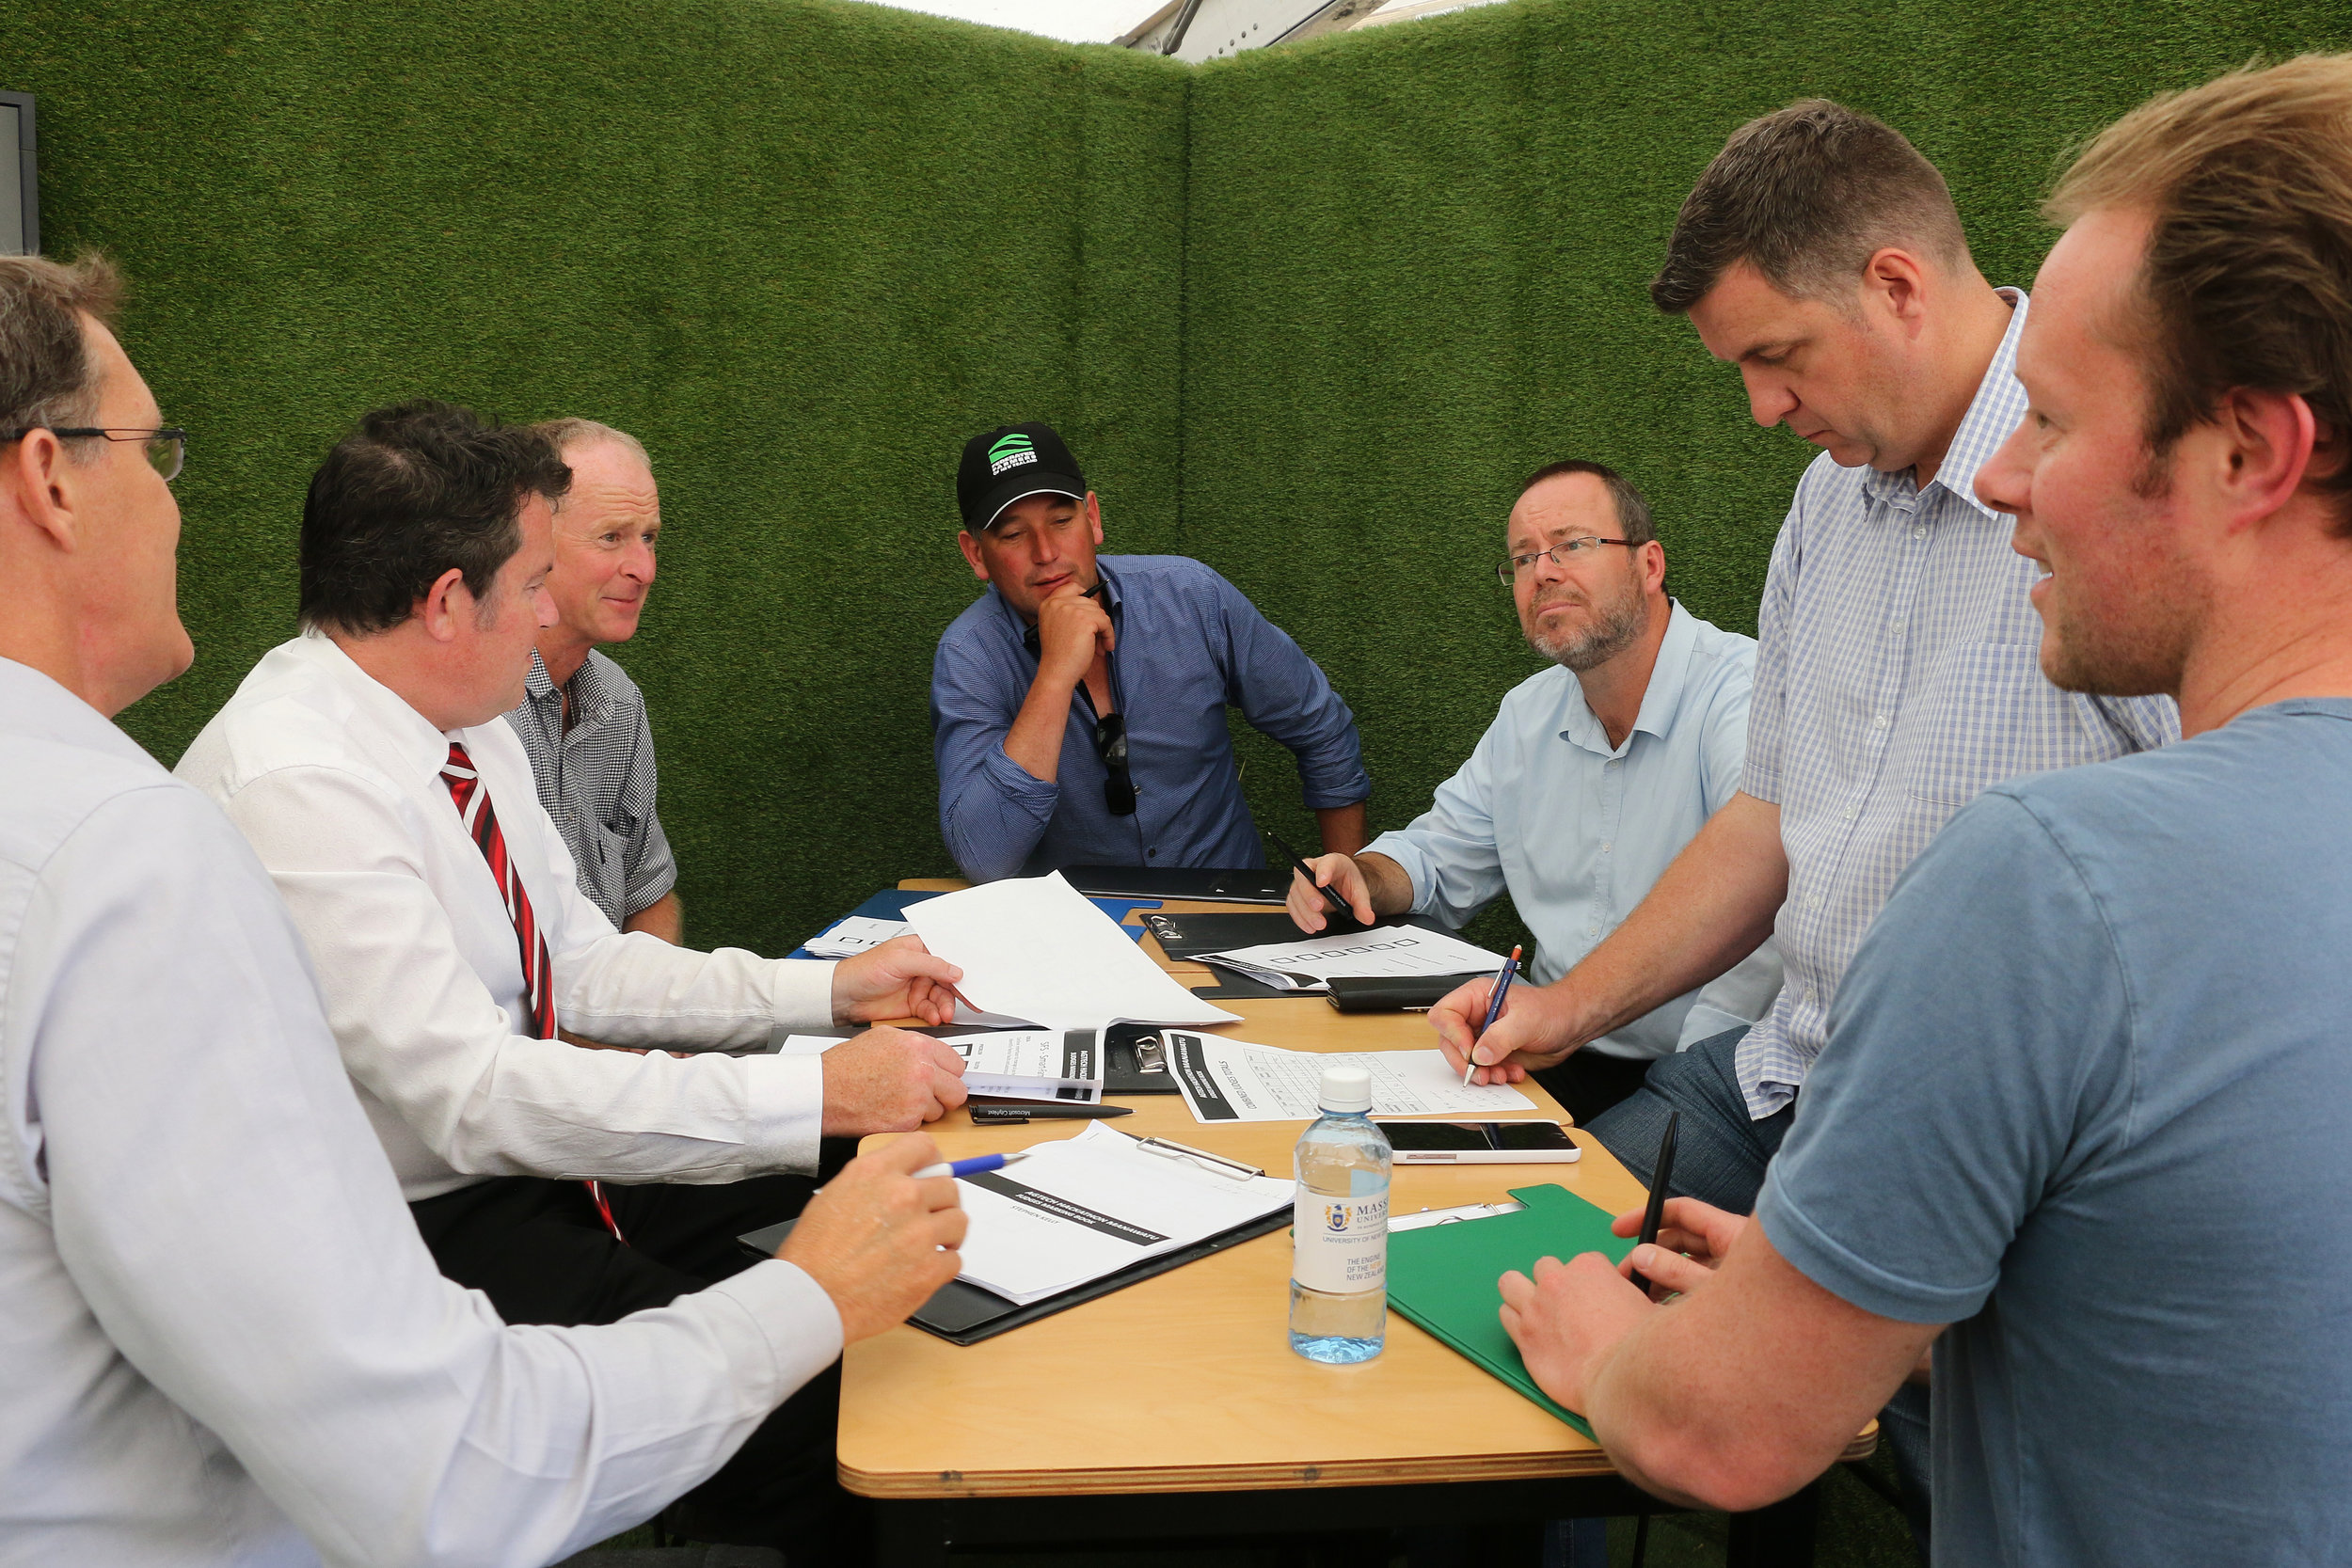 Judges deliberating on presentations in 2017